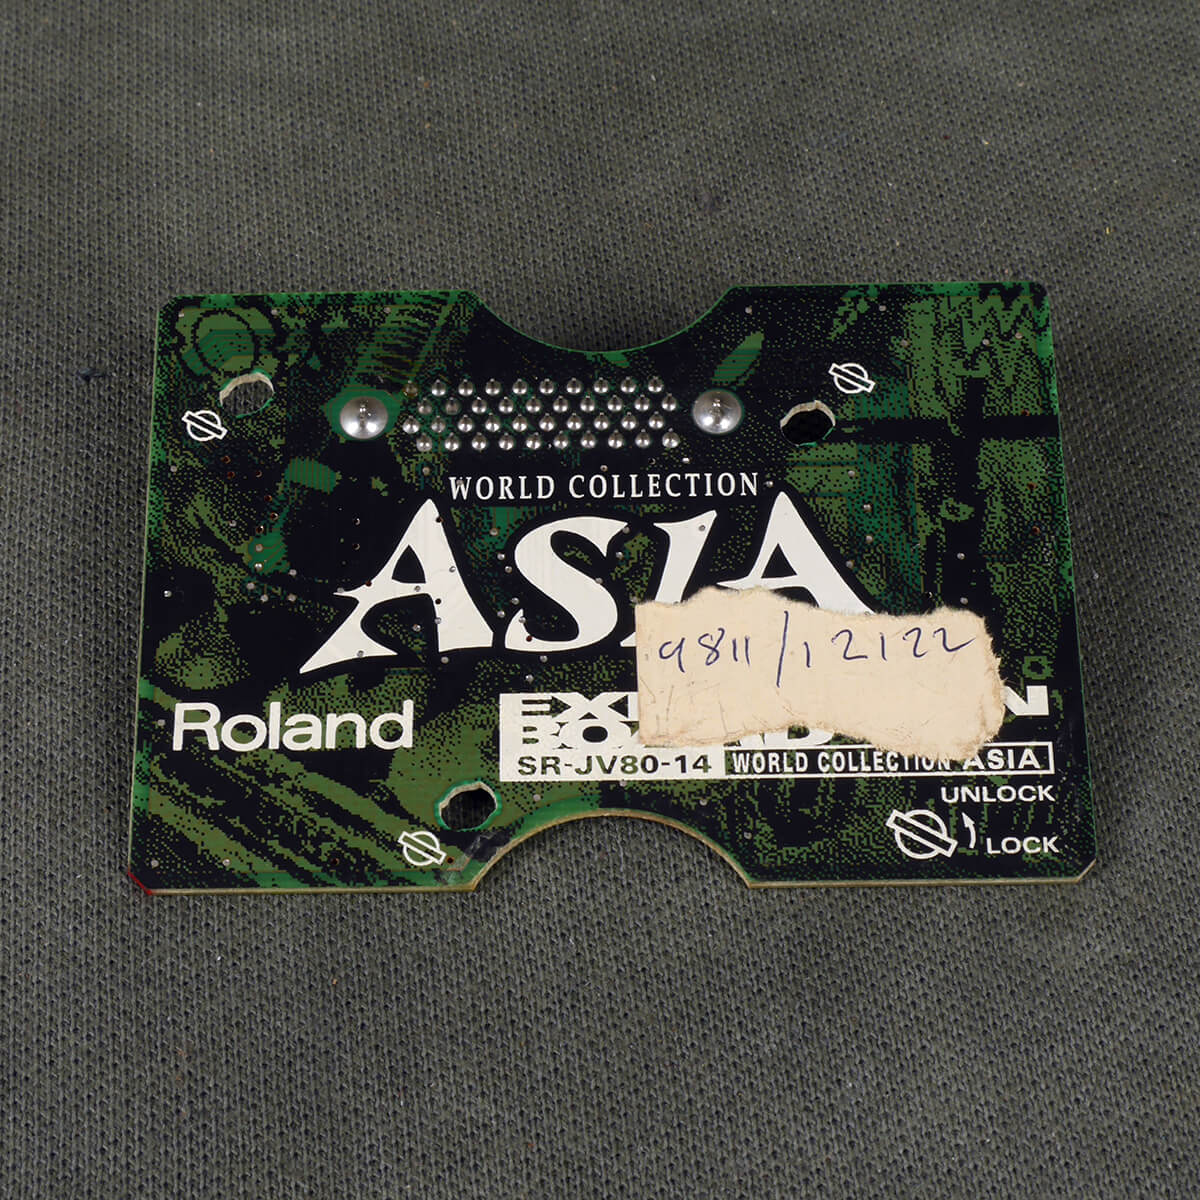 Roland SR-JV80 Expansion Board - 14 World Collection Asia - 2nd Hand